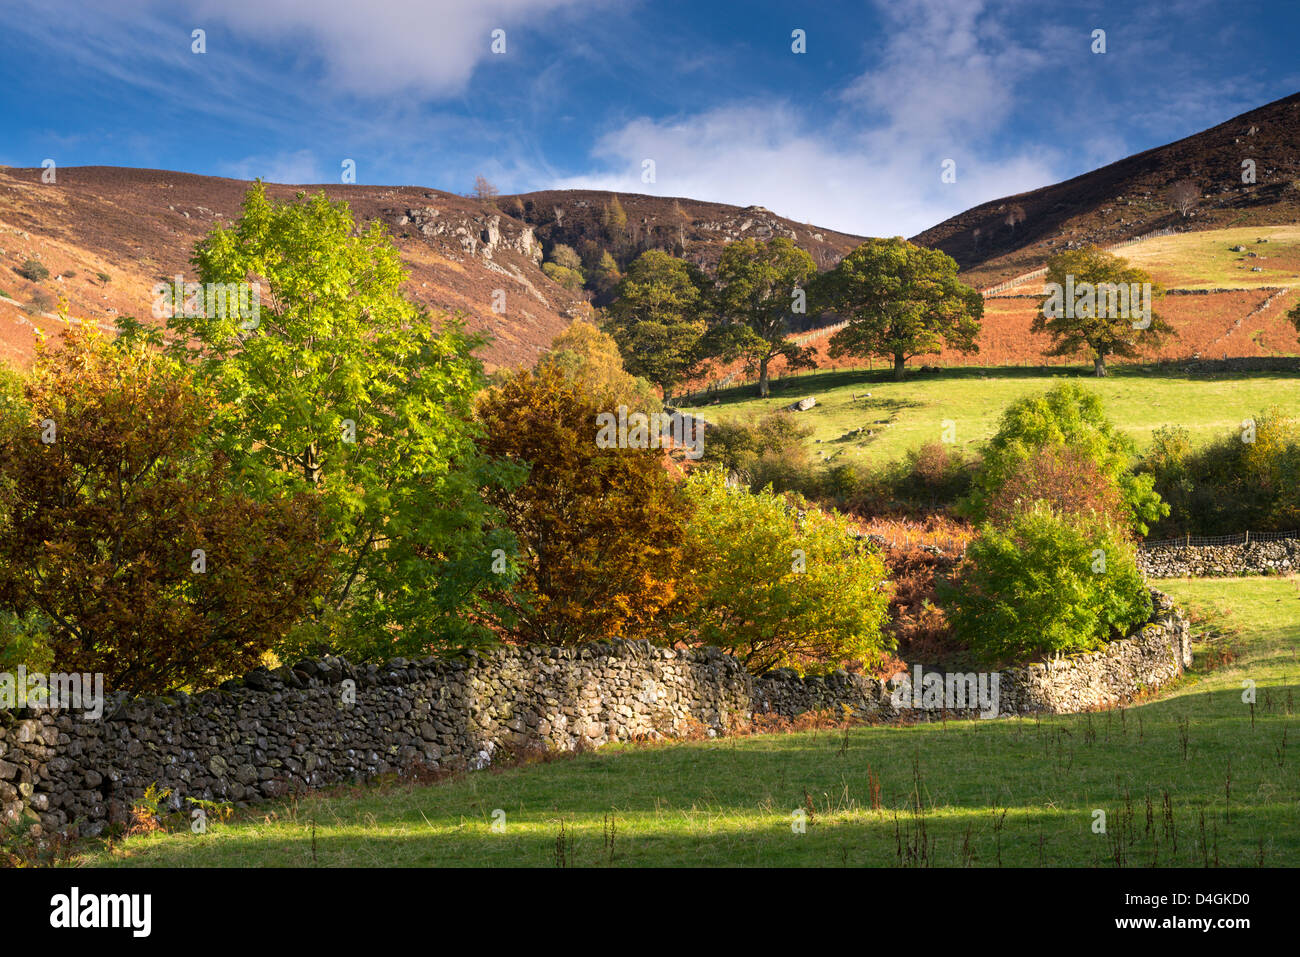 Dry stone wall bordered by autumnal trees, Lake District, Cumbria, England. Autumn (October) 2012. - Stock Image